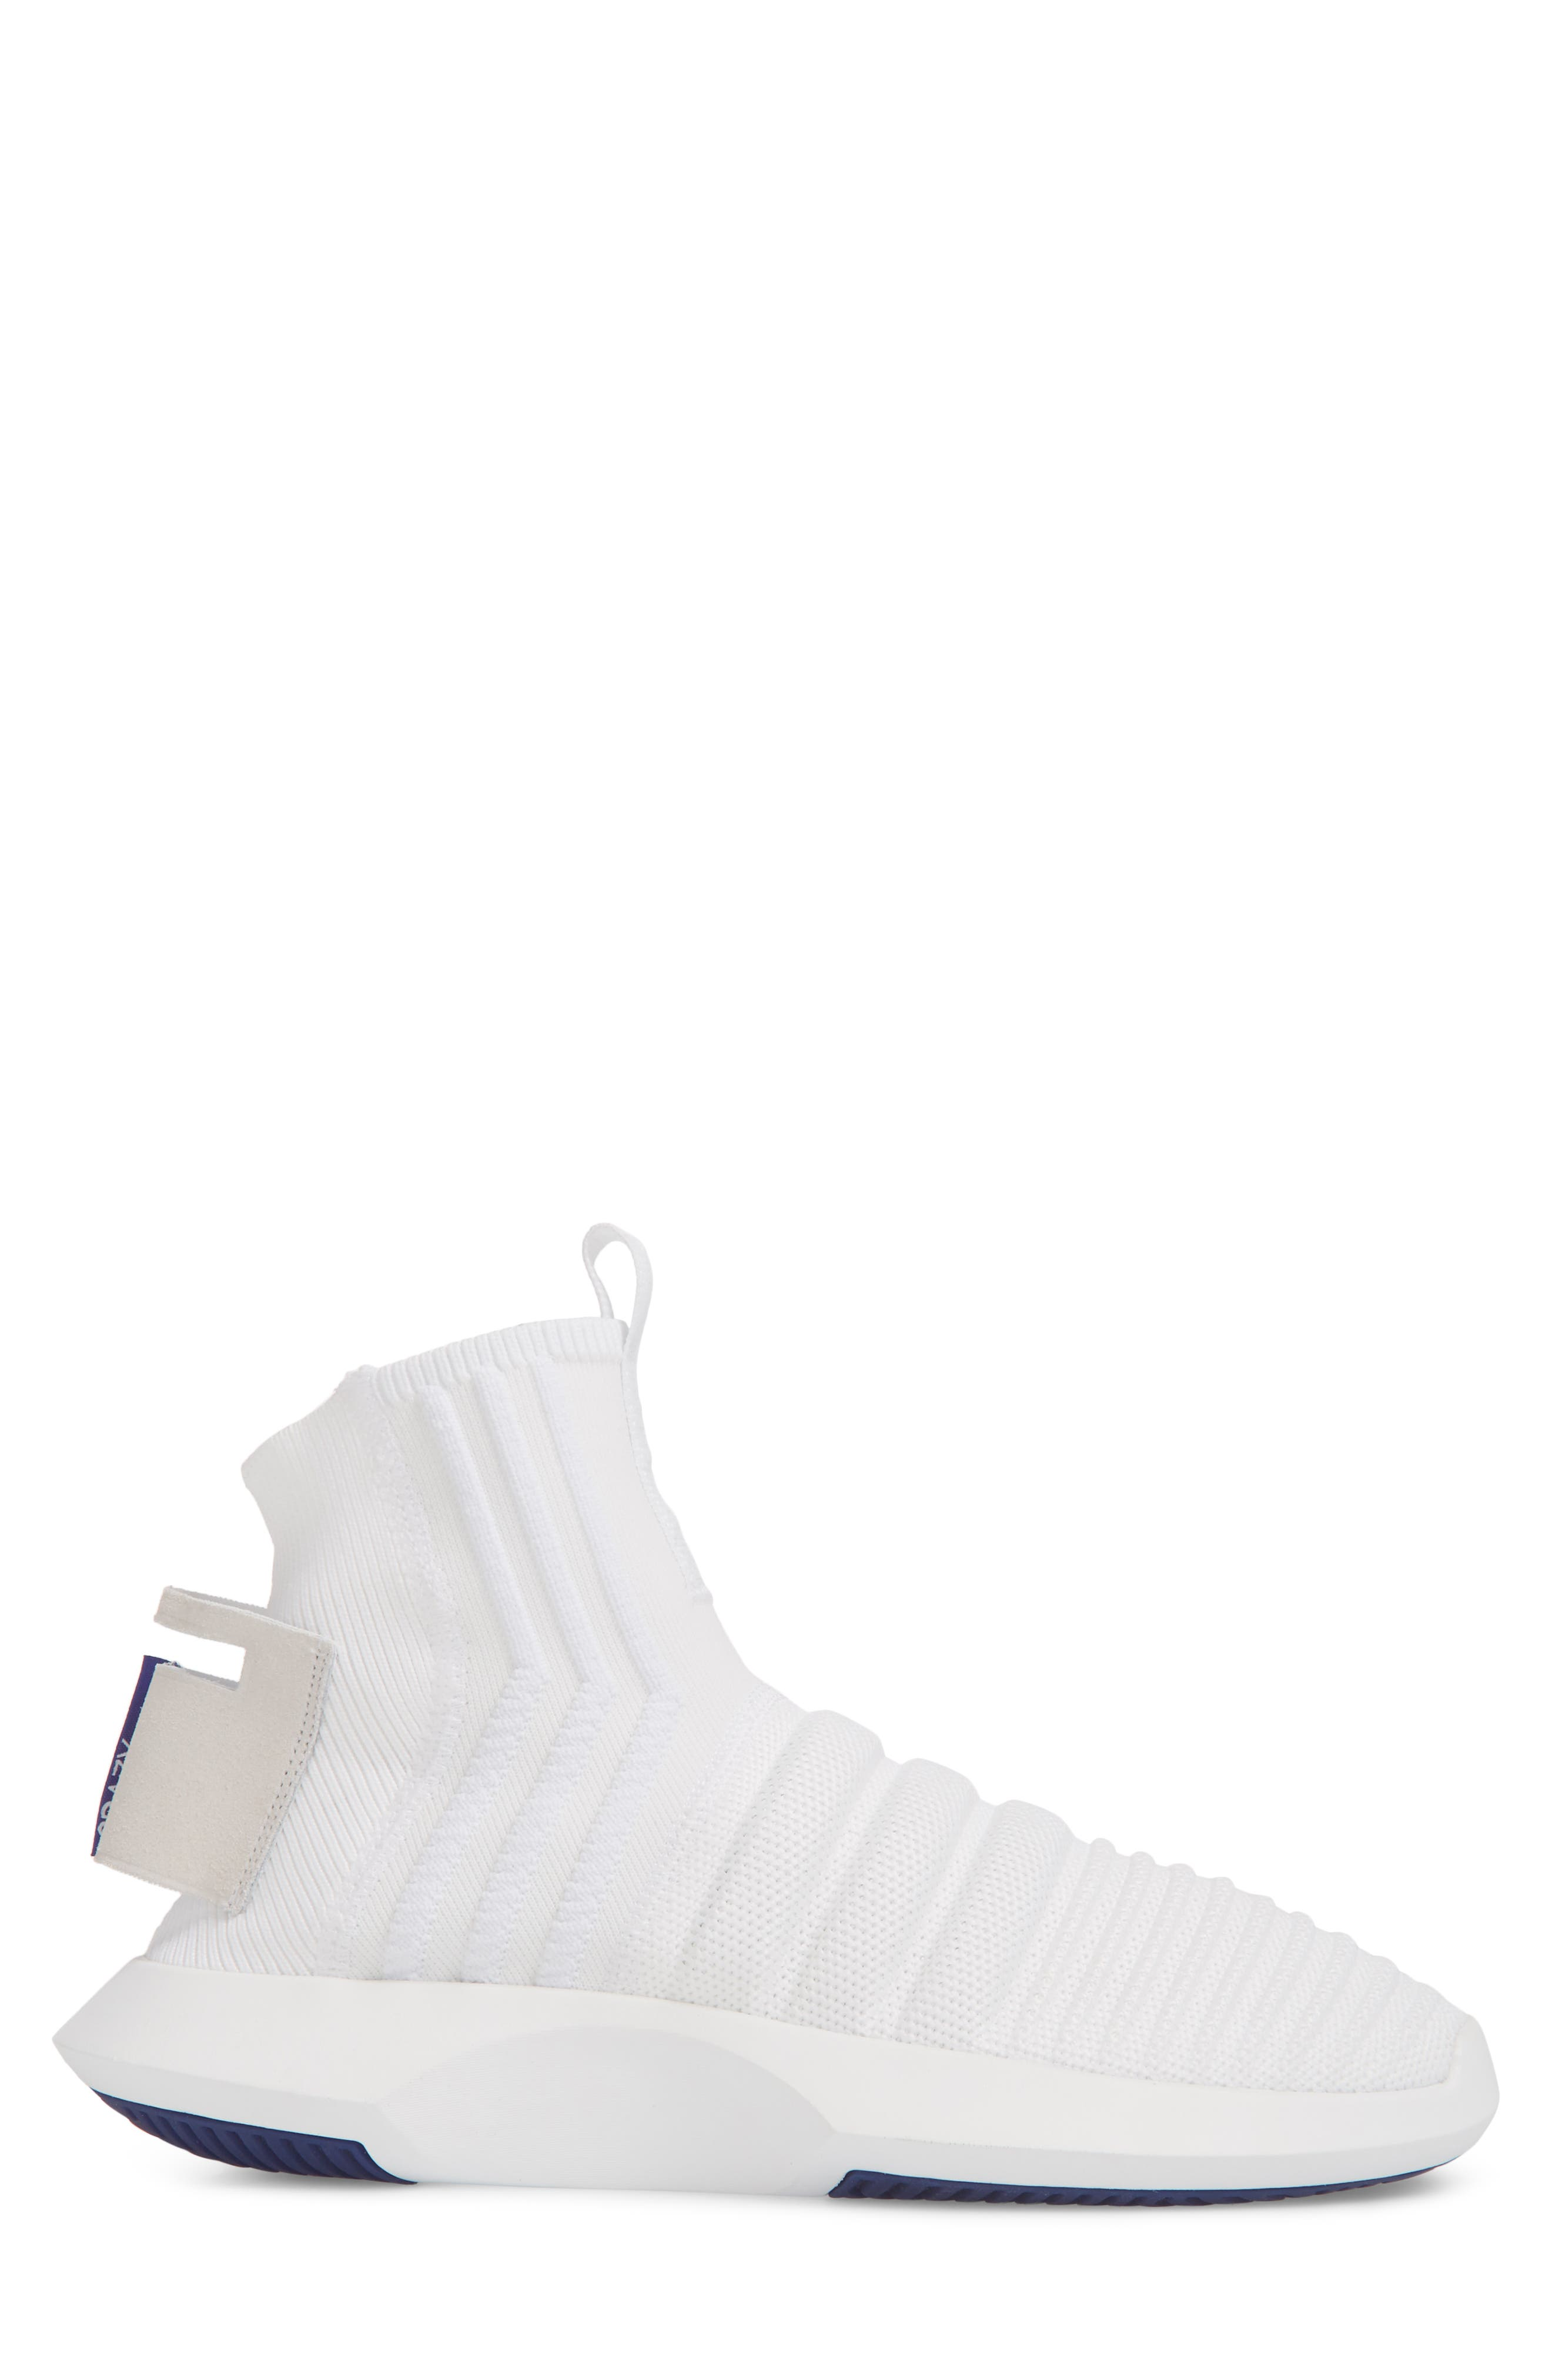 Crazy 1 ADV Sock Primeknit Sneaker,                             Alternate thumbnail 3, color,